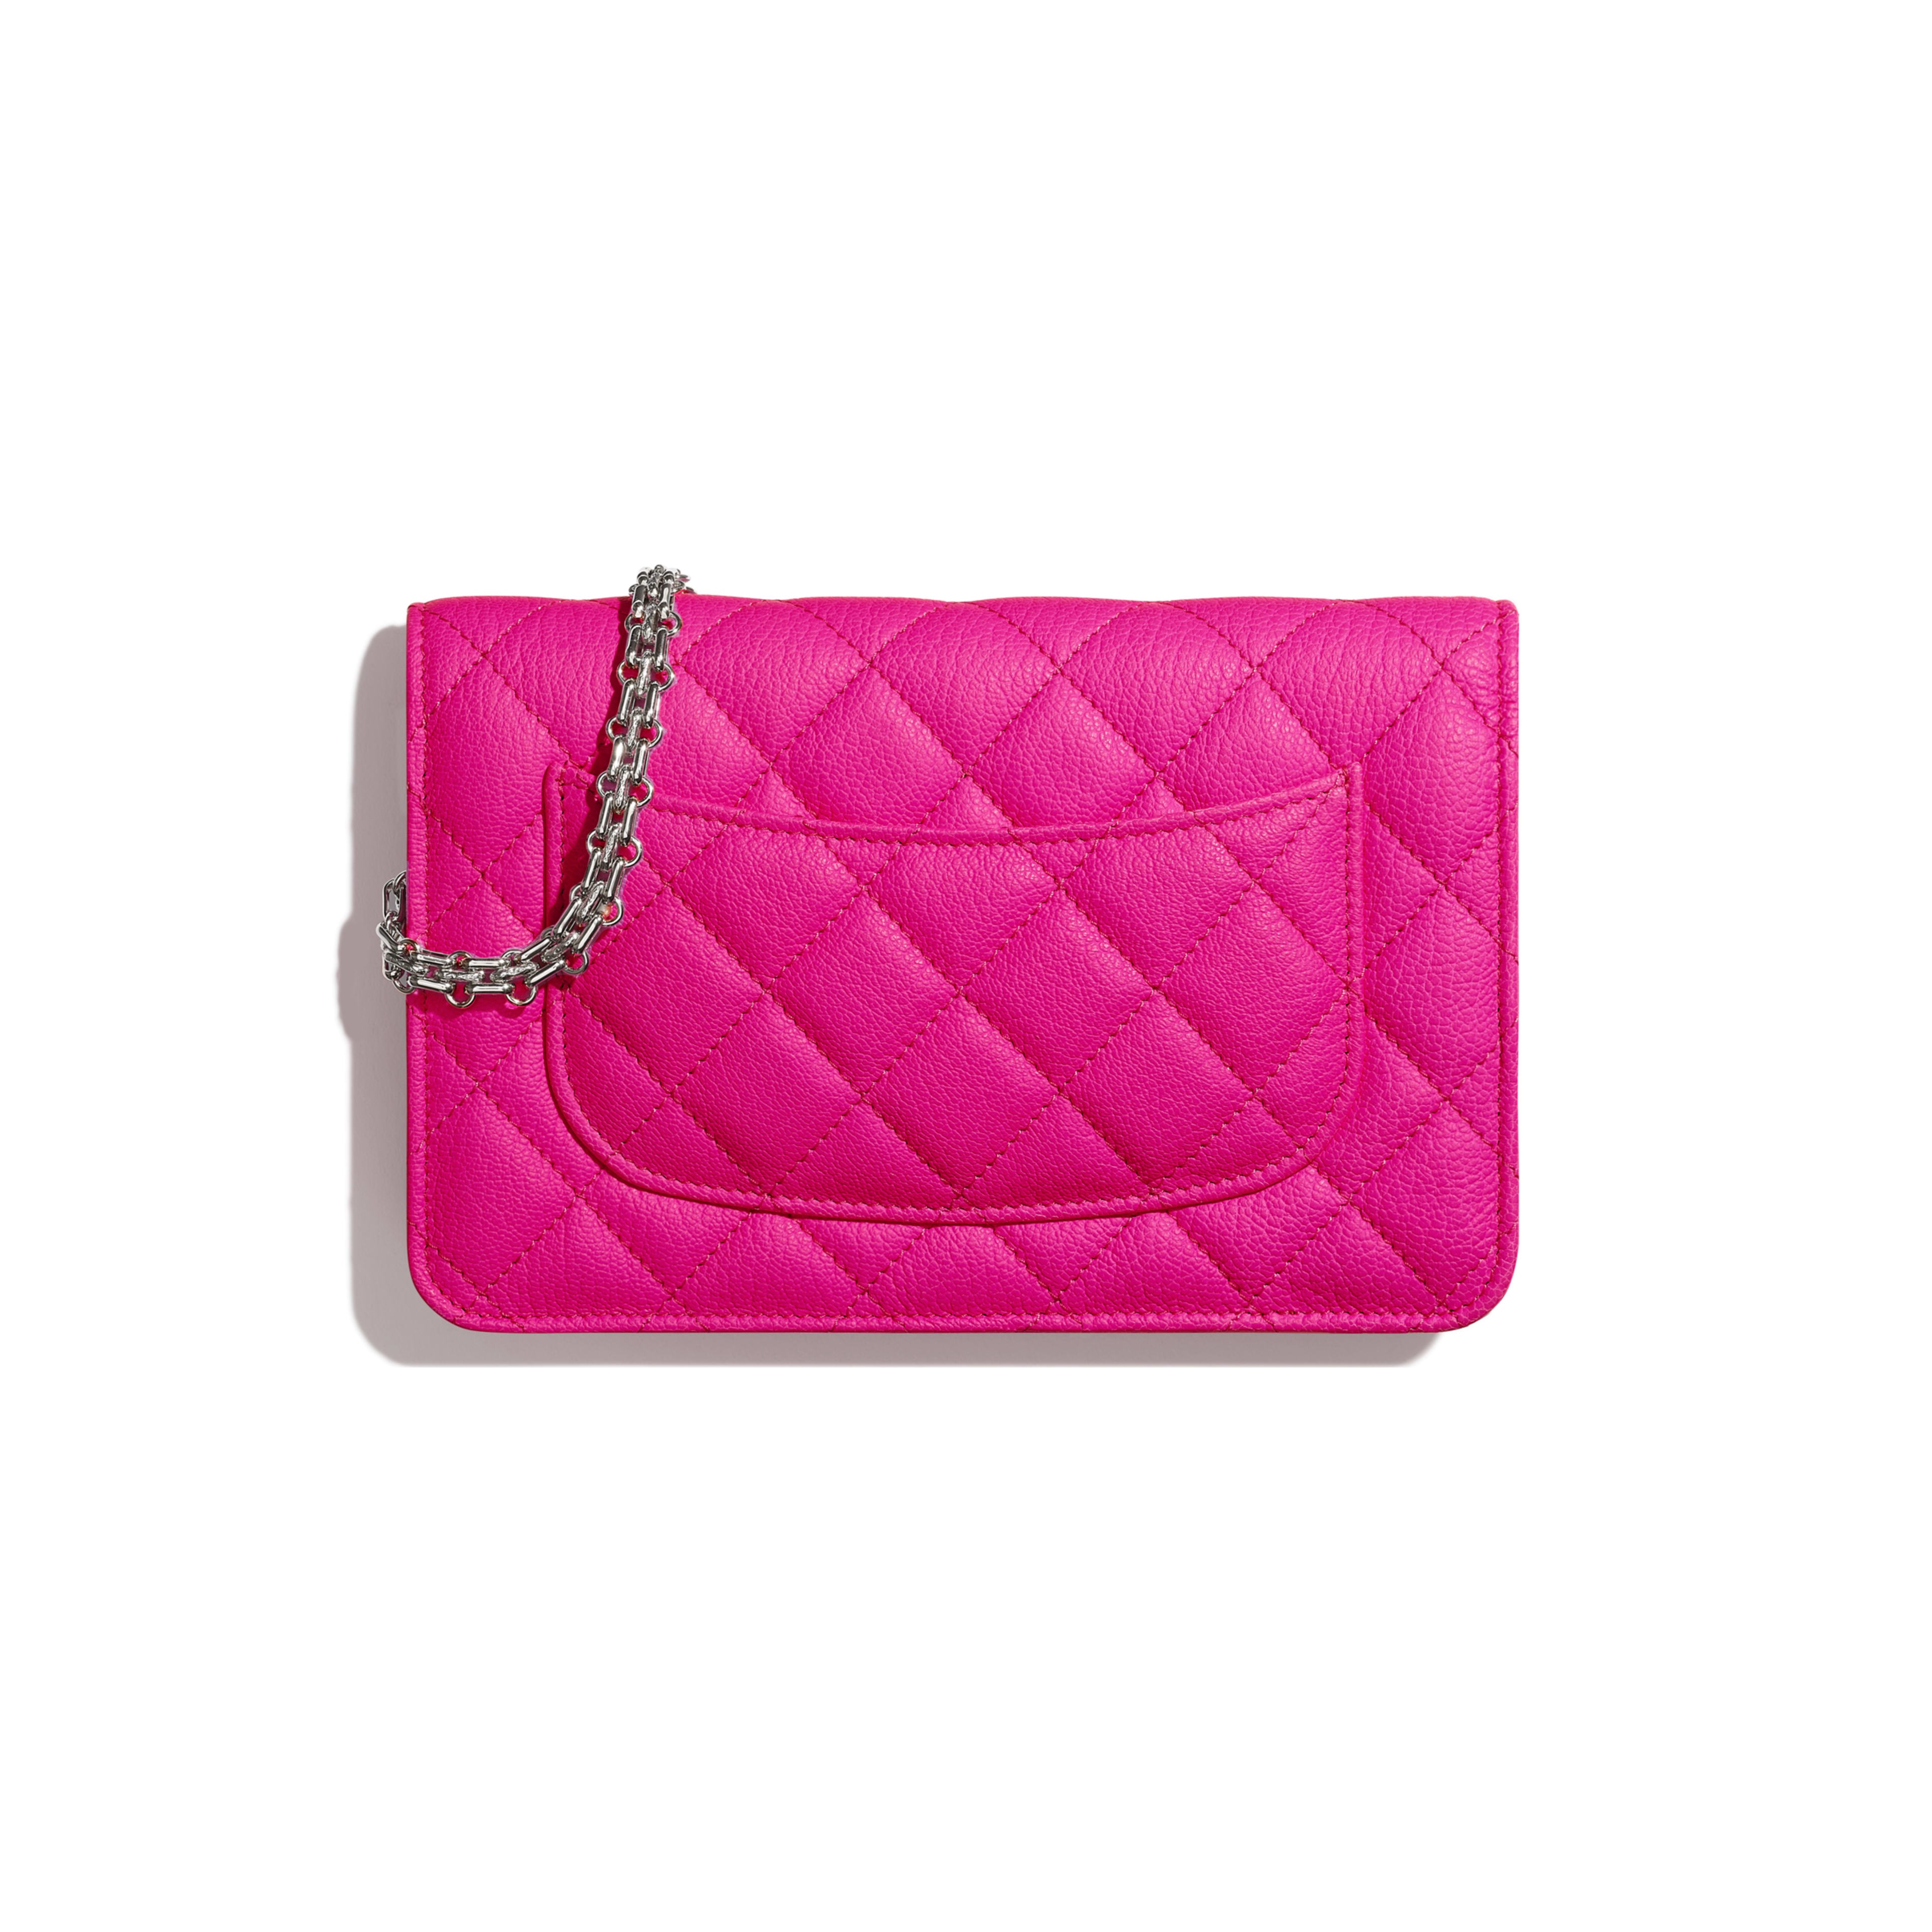 2.55 Wallet on Chain - Pink - Goatskin & Silver-Tone Metal - Alternative view - see full sized version